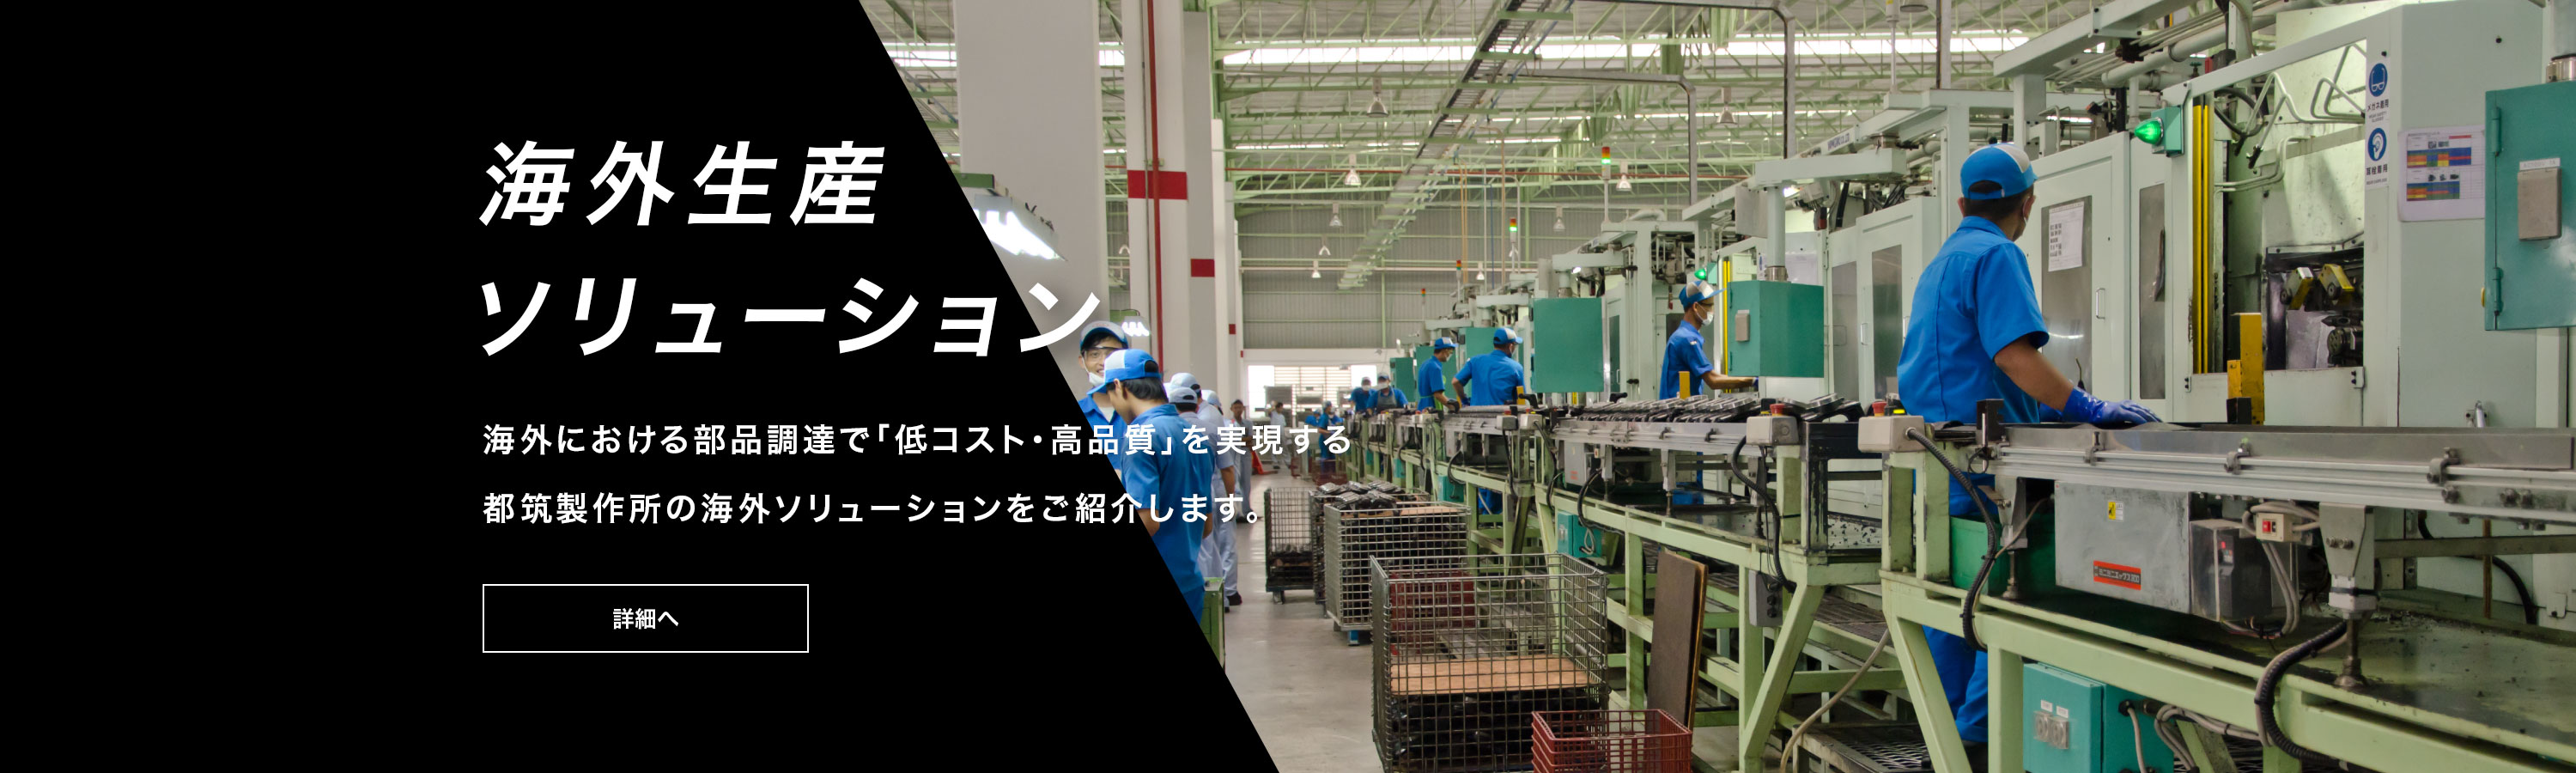 Overseas production solutions This section covers Tsuzuki Co., Ltd.'s overseas production solutions, which achieve high quality and low costs in overseas component procurement.